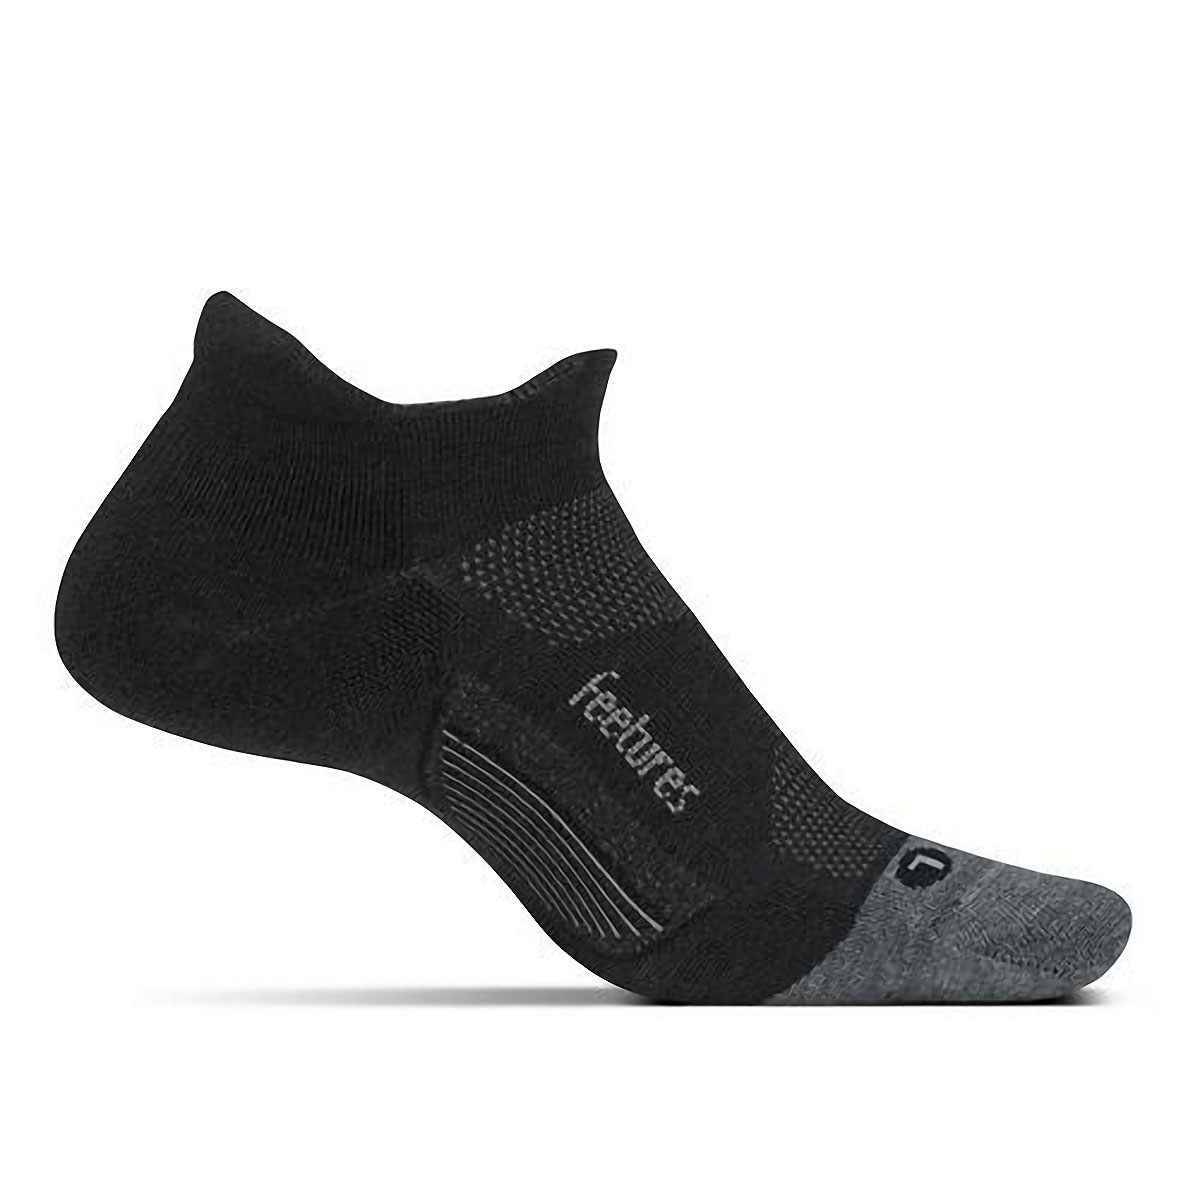 Feetures Merino 10 Ultra Light No Show Socks - Color: Charcoal - Size: S, Charcoal, large, image 1